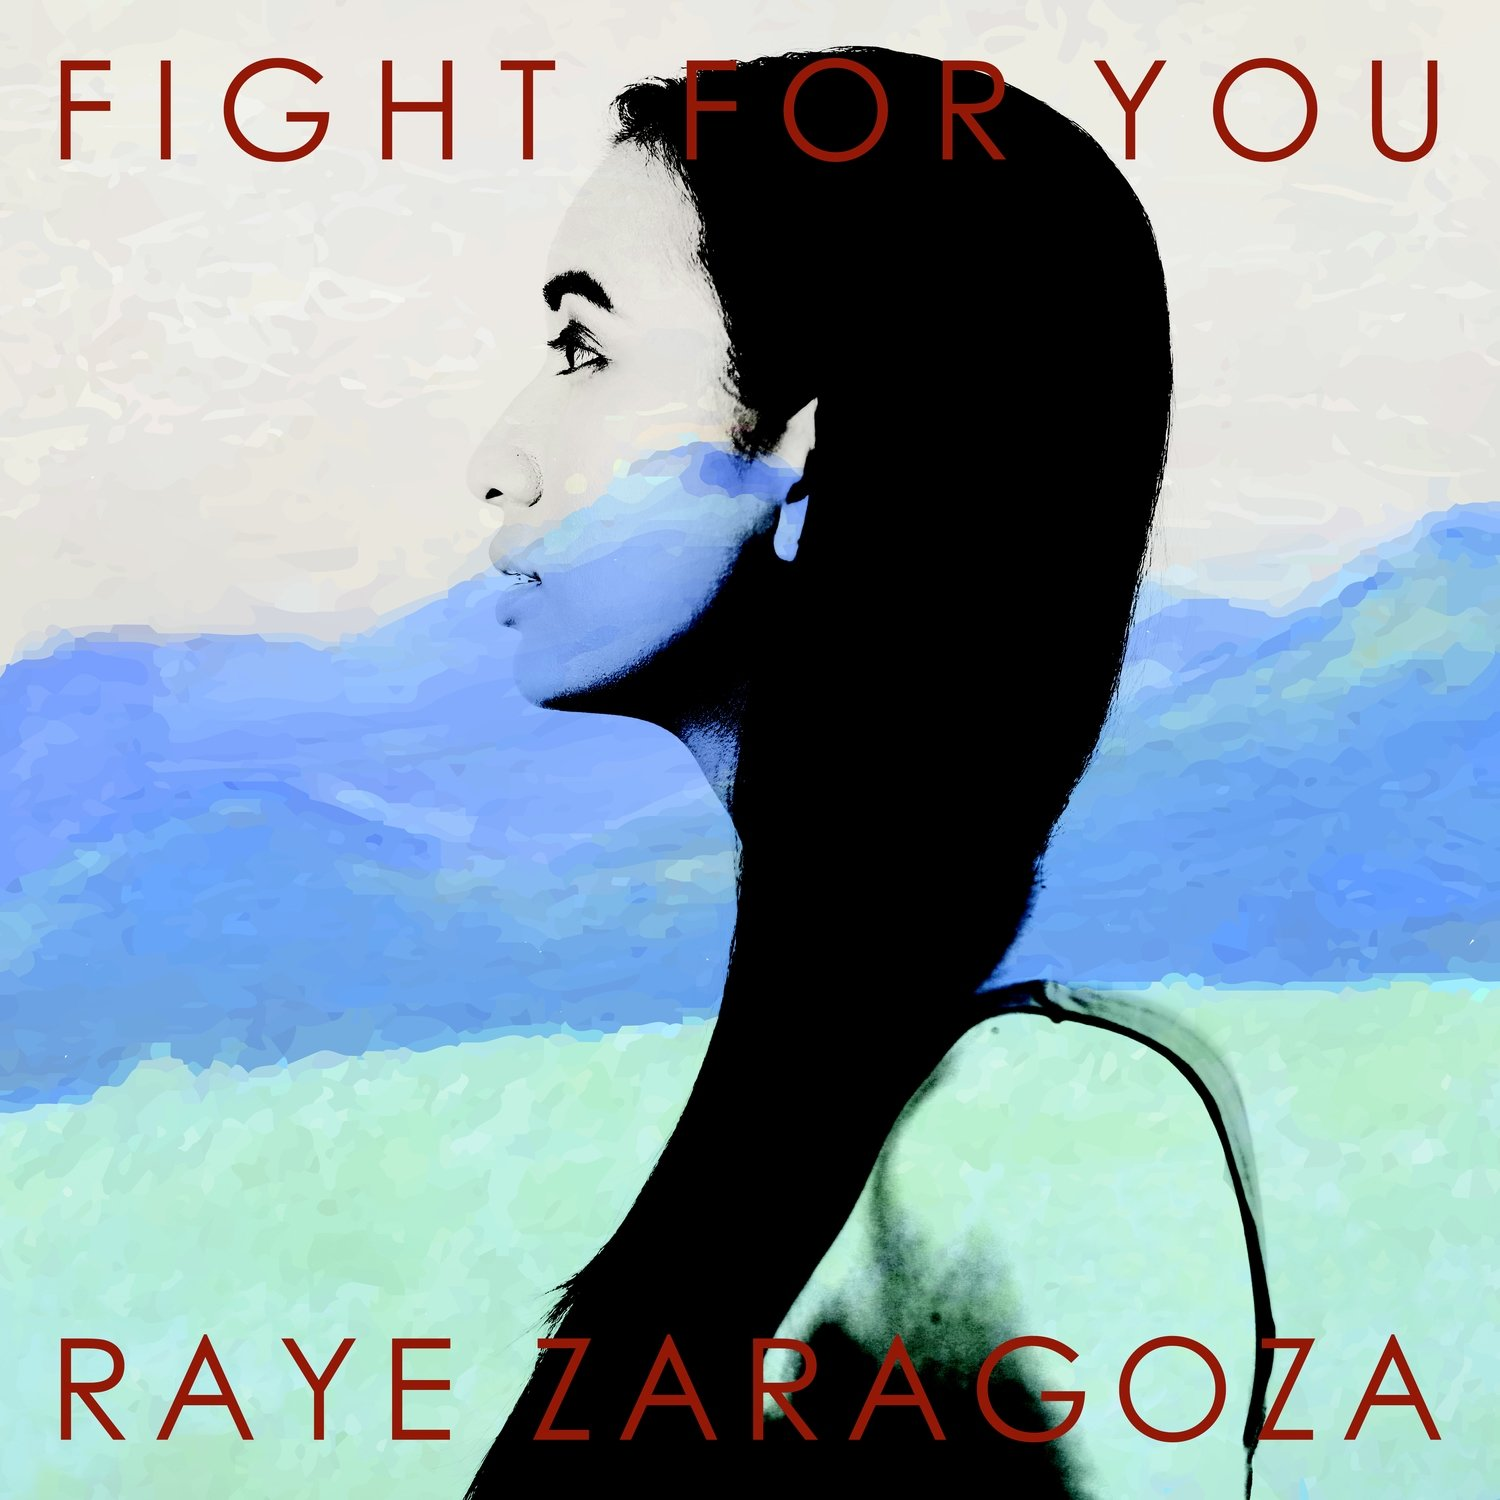 Raye's album Fight for You is out now and available on her website! Click the picture!